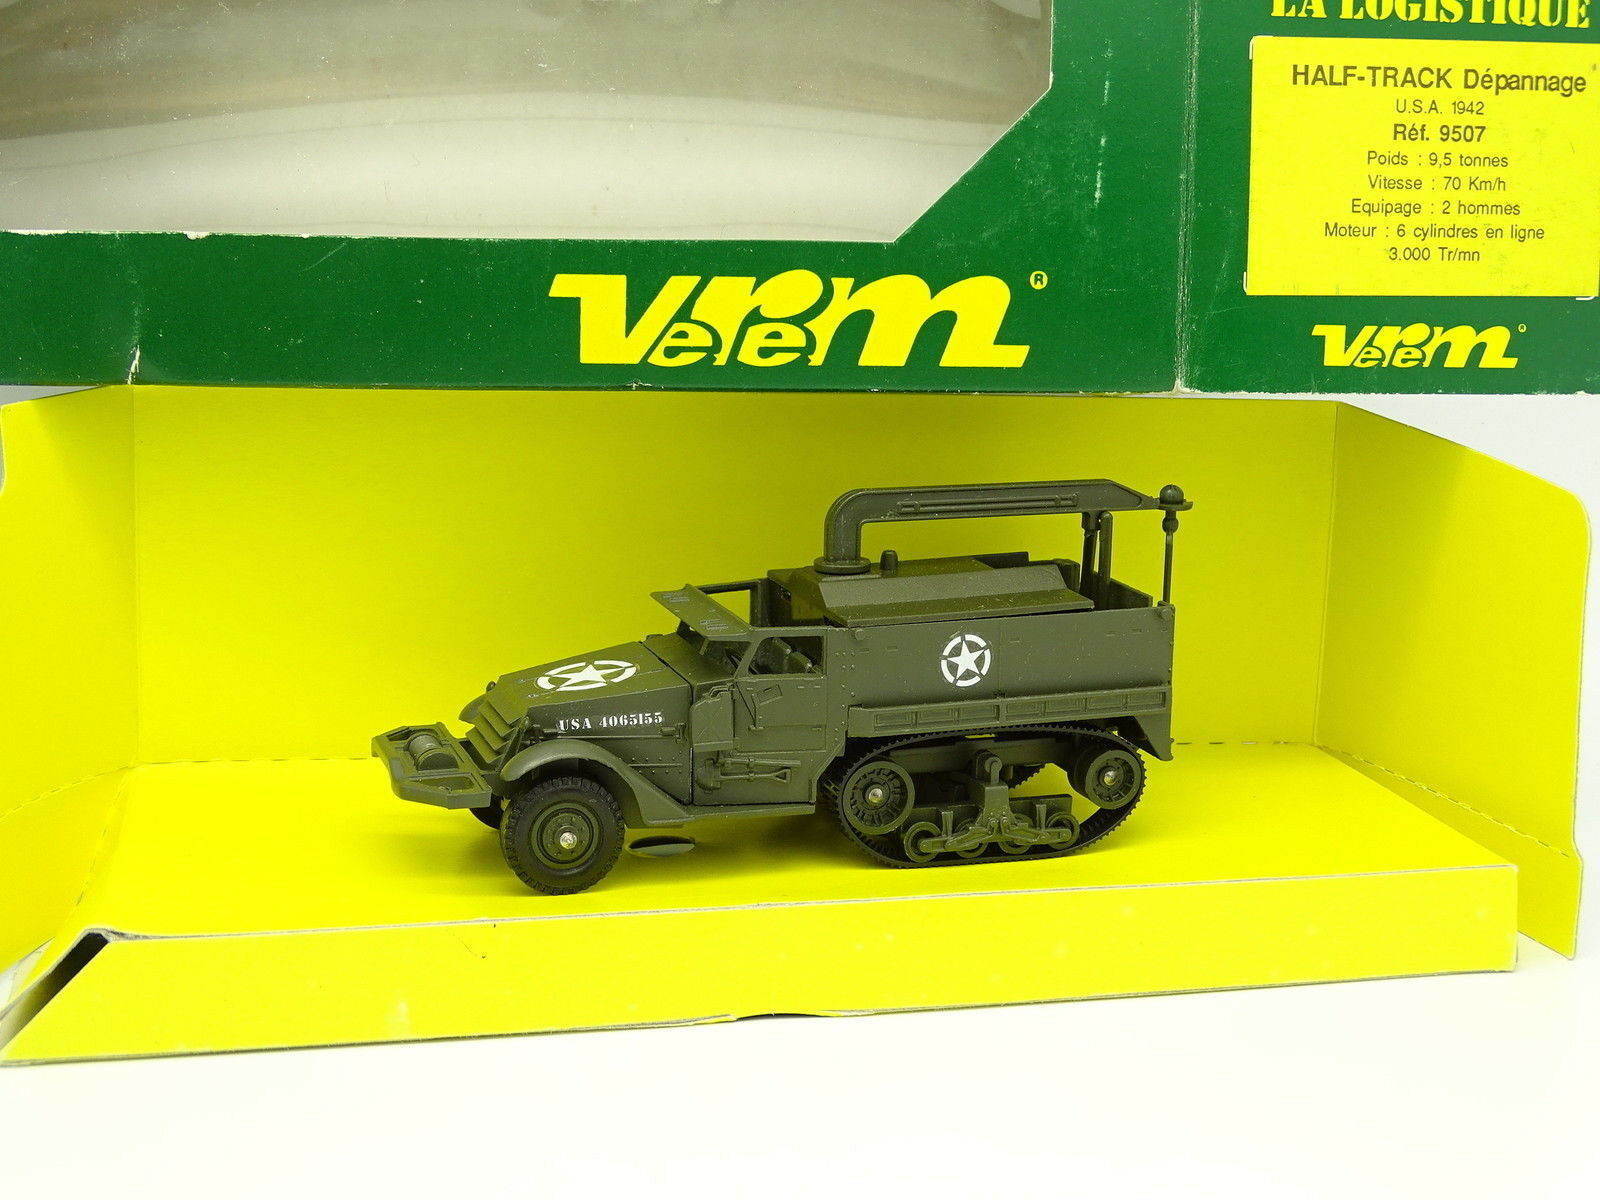 Verem Military Army 1 50 - Half Track Troubleshooting USA 1942 9507